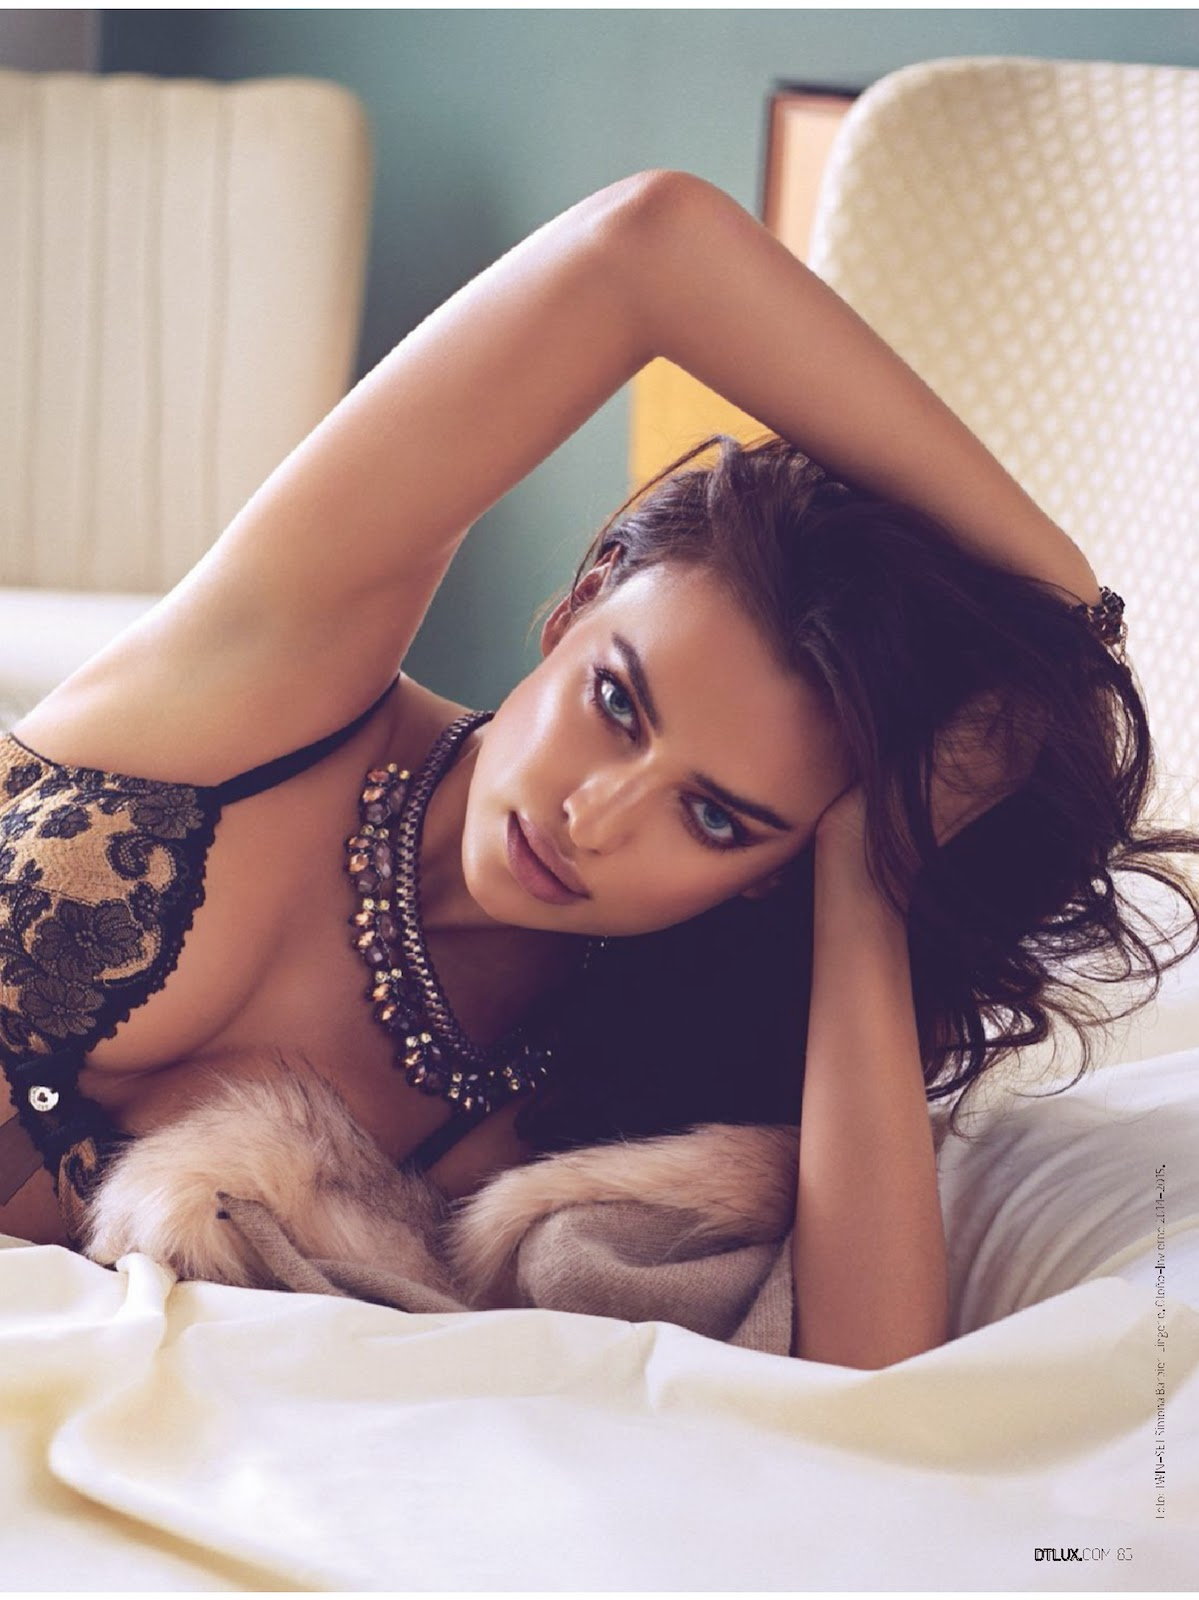 Irina Shayk poses in sultry lingerie looks for DT Spain November 2014